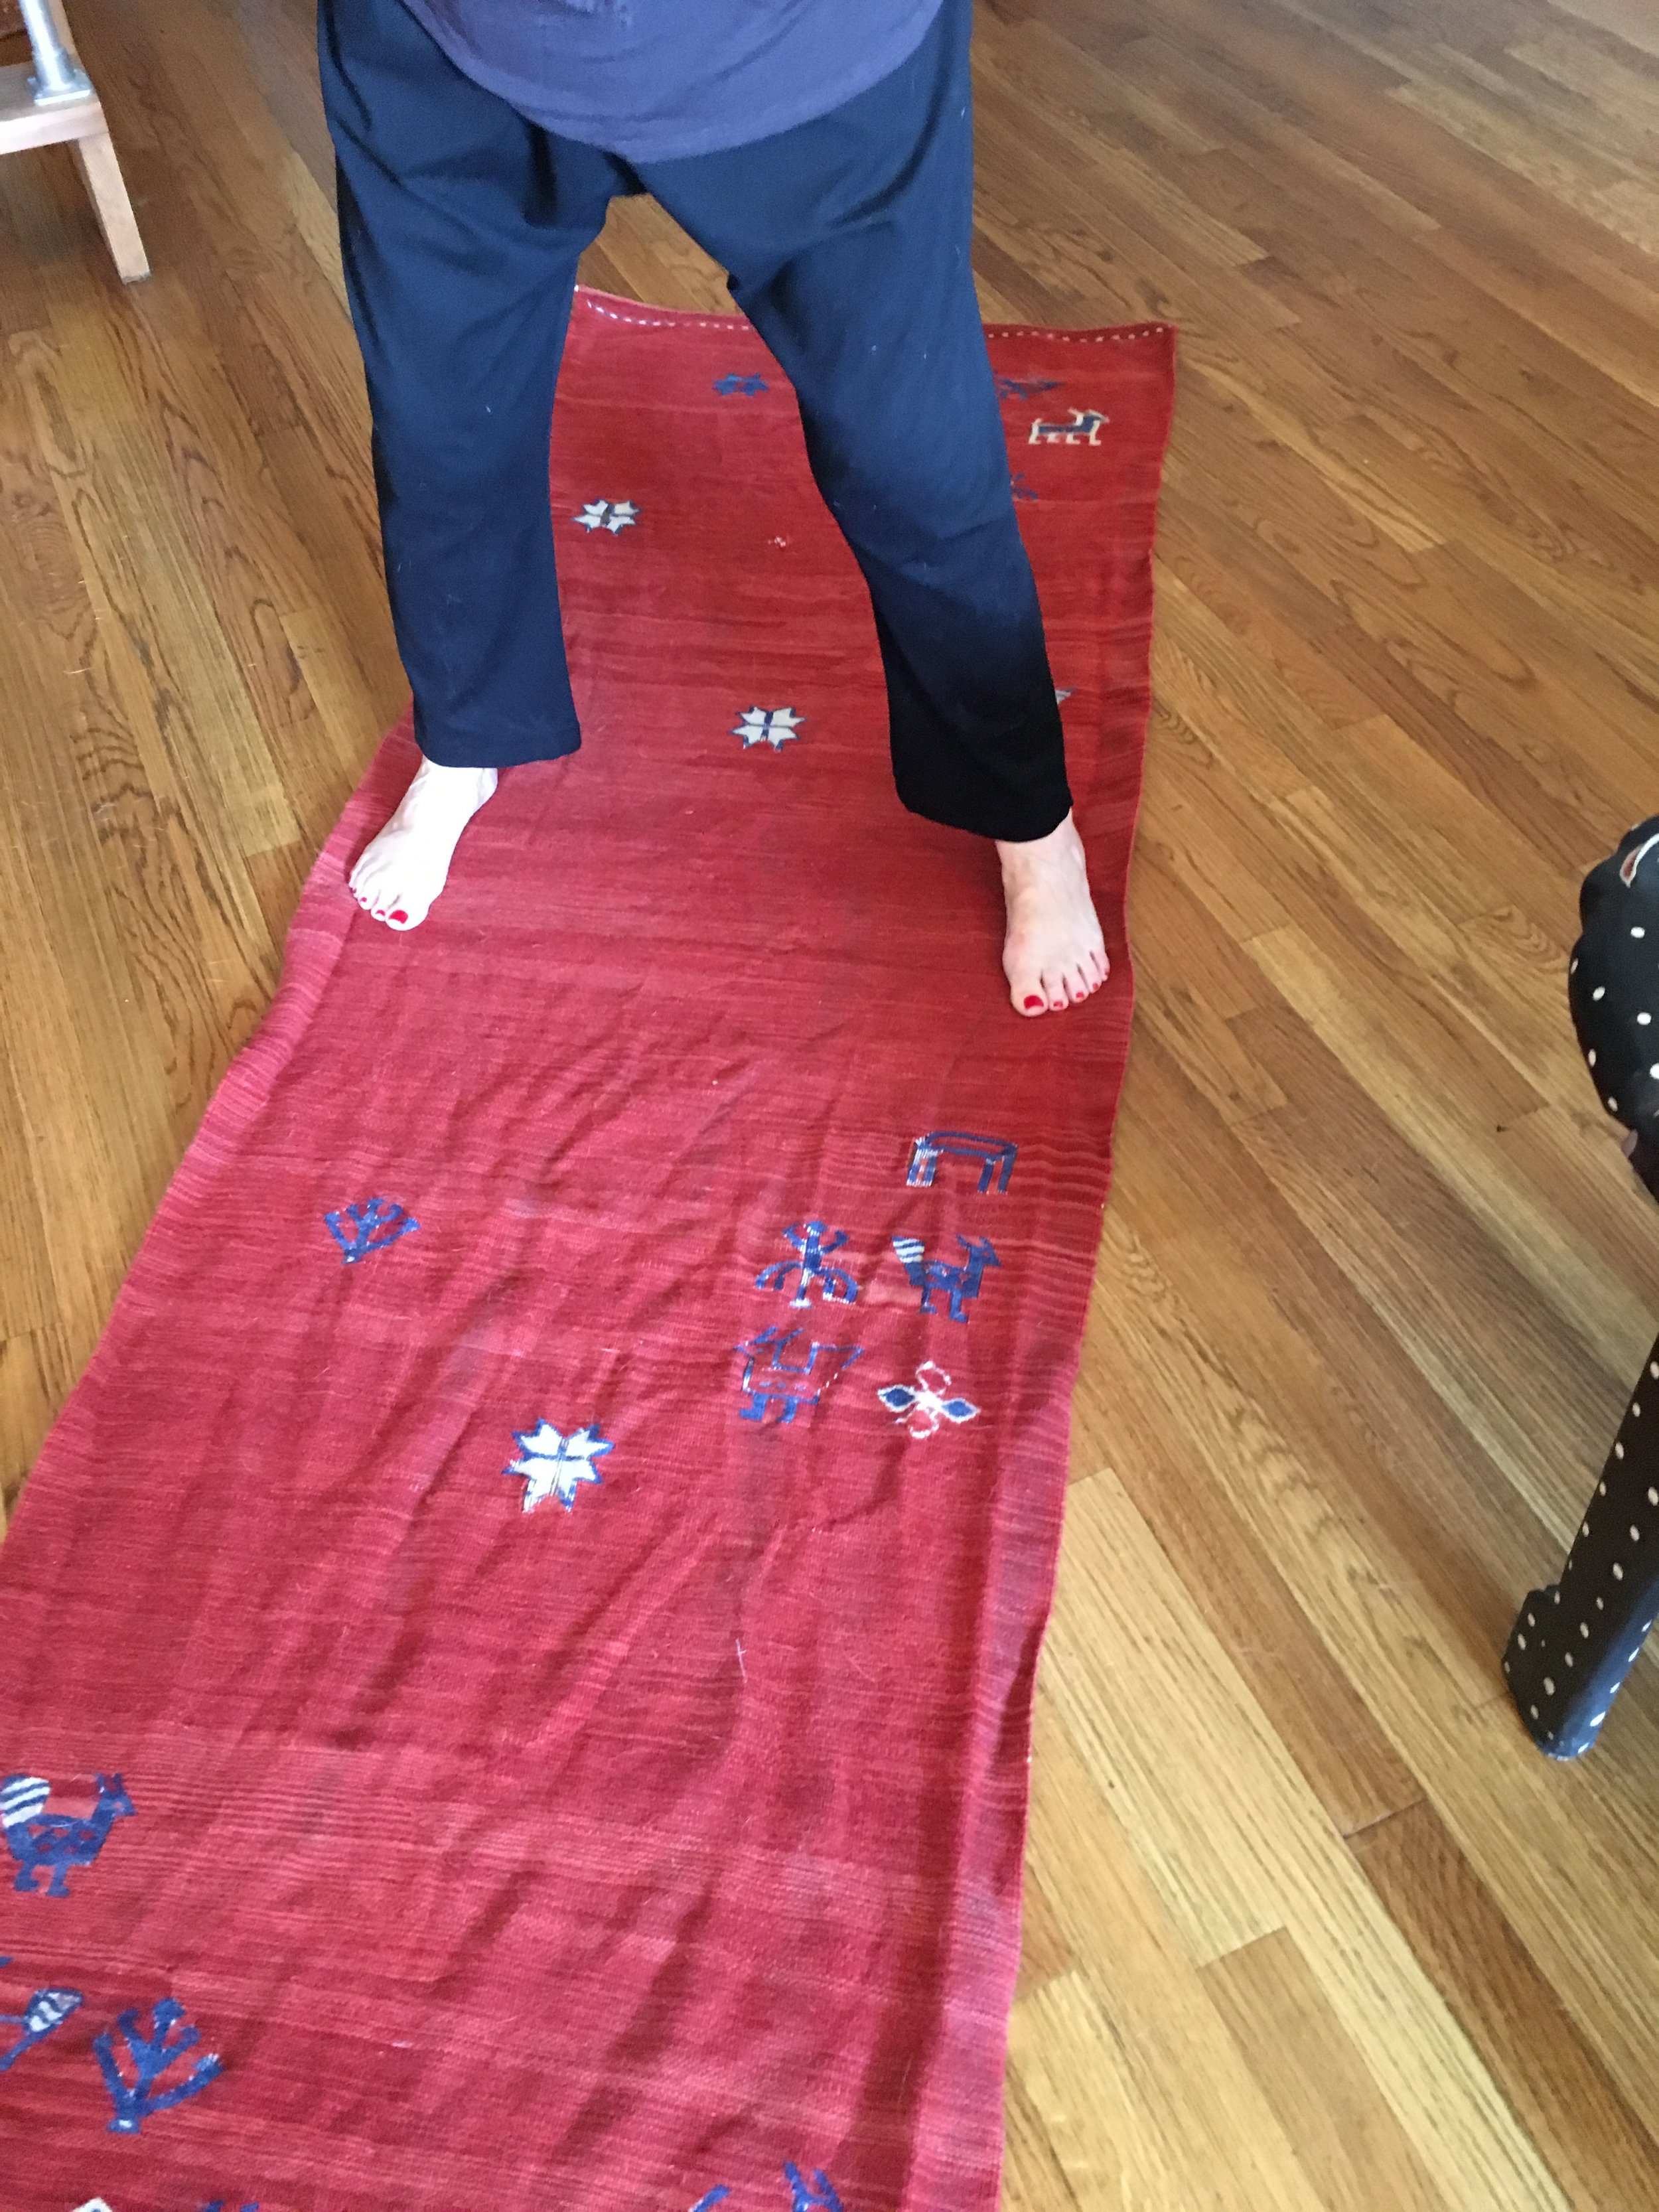 Block the rug. Having a friend help you pull on each end is helpful. Walk on it in bare feet and stretch.